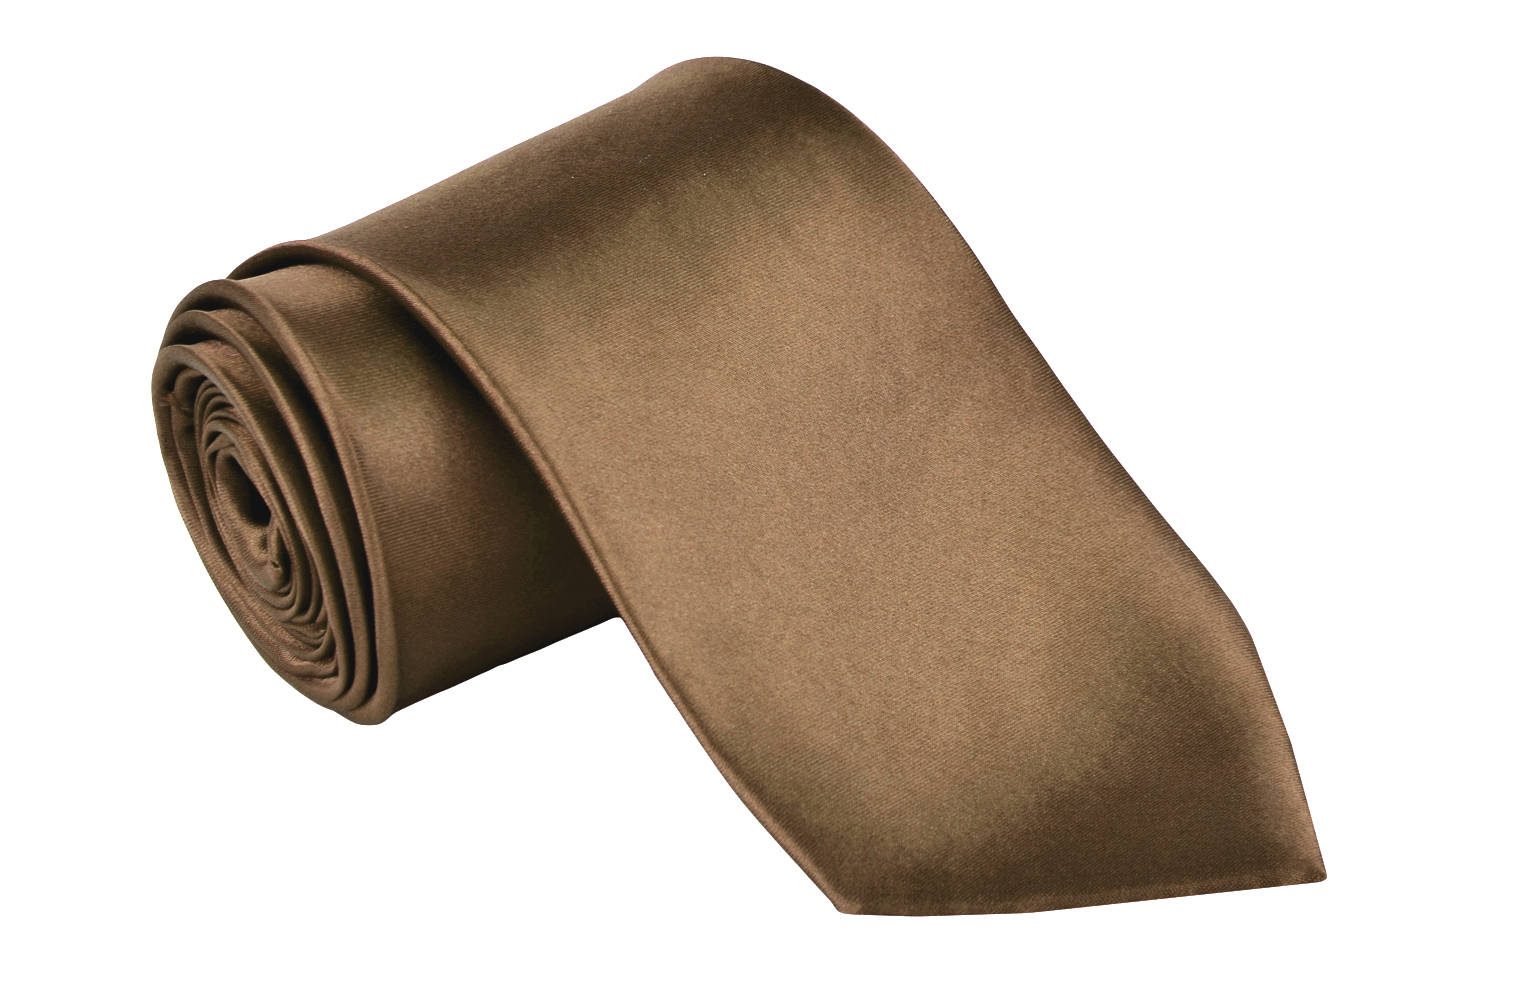 """Dabung - Men's Classic Neck Tie - Silk Finish Polyester Necktie - Solid Color Long Ties for Men - Fashion Tie 57"""" x 3.5"""" Shiny and Non Shiny - Brown-M"""